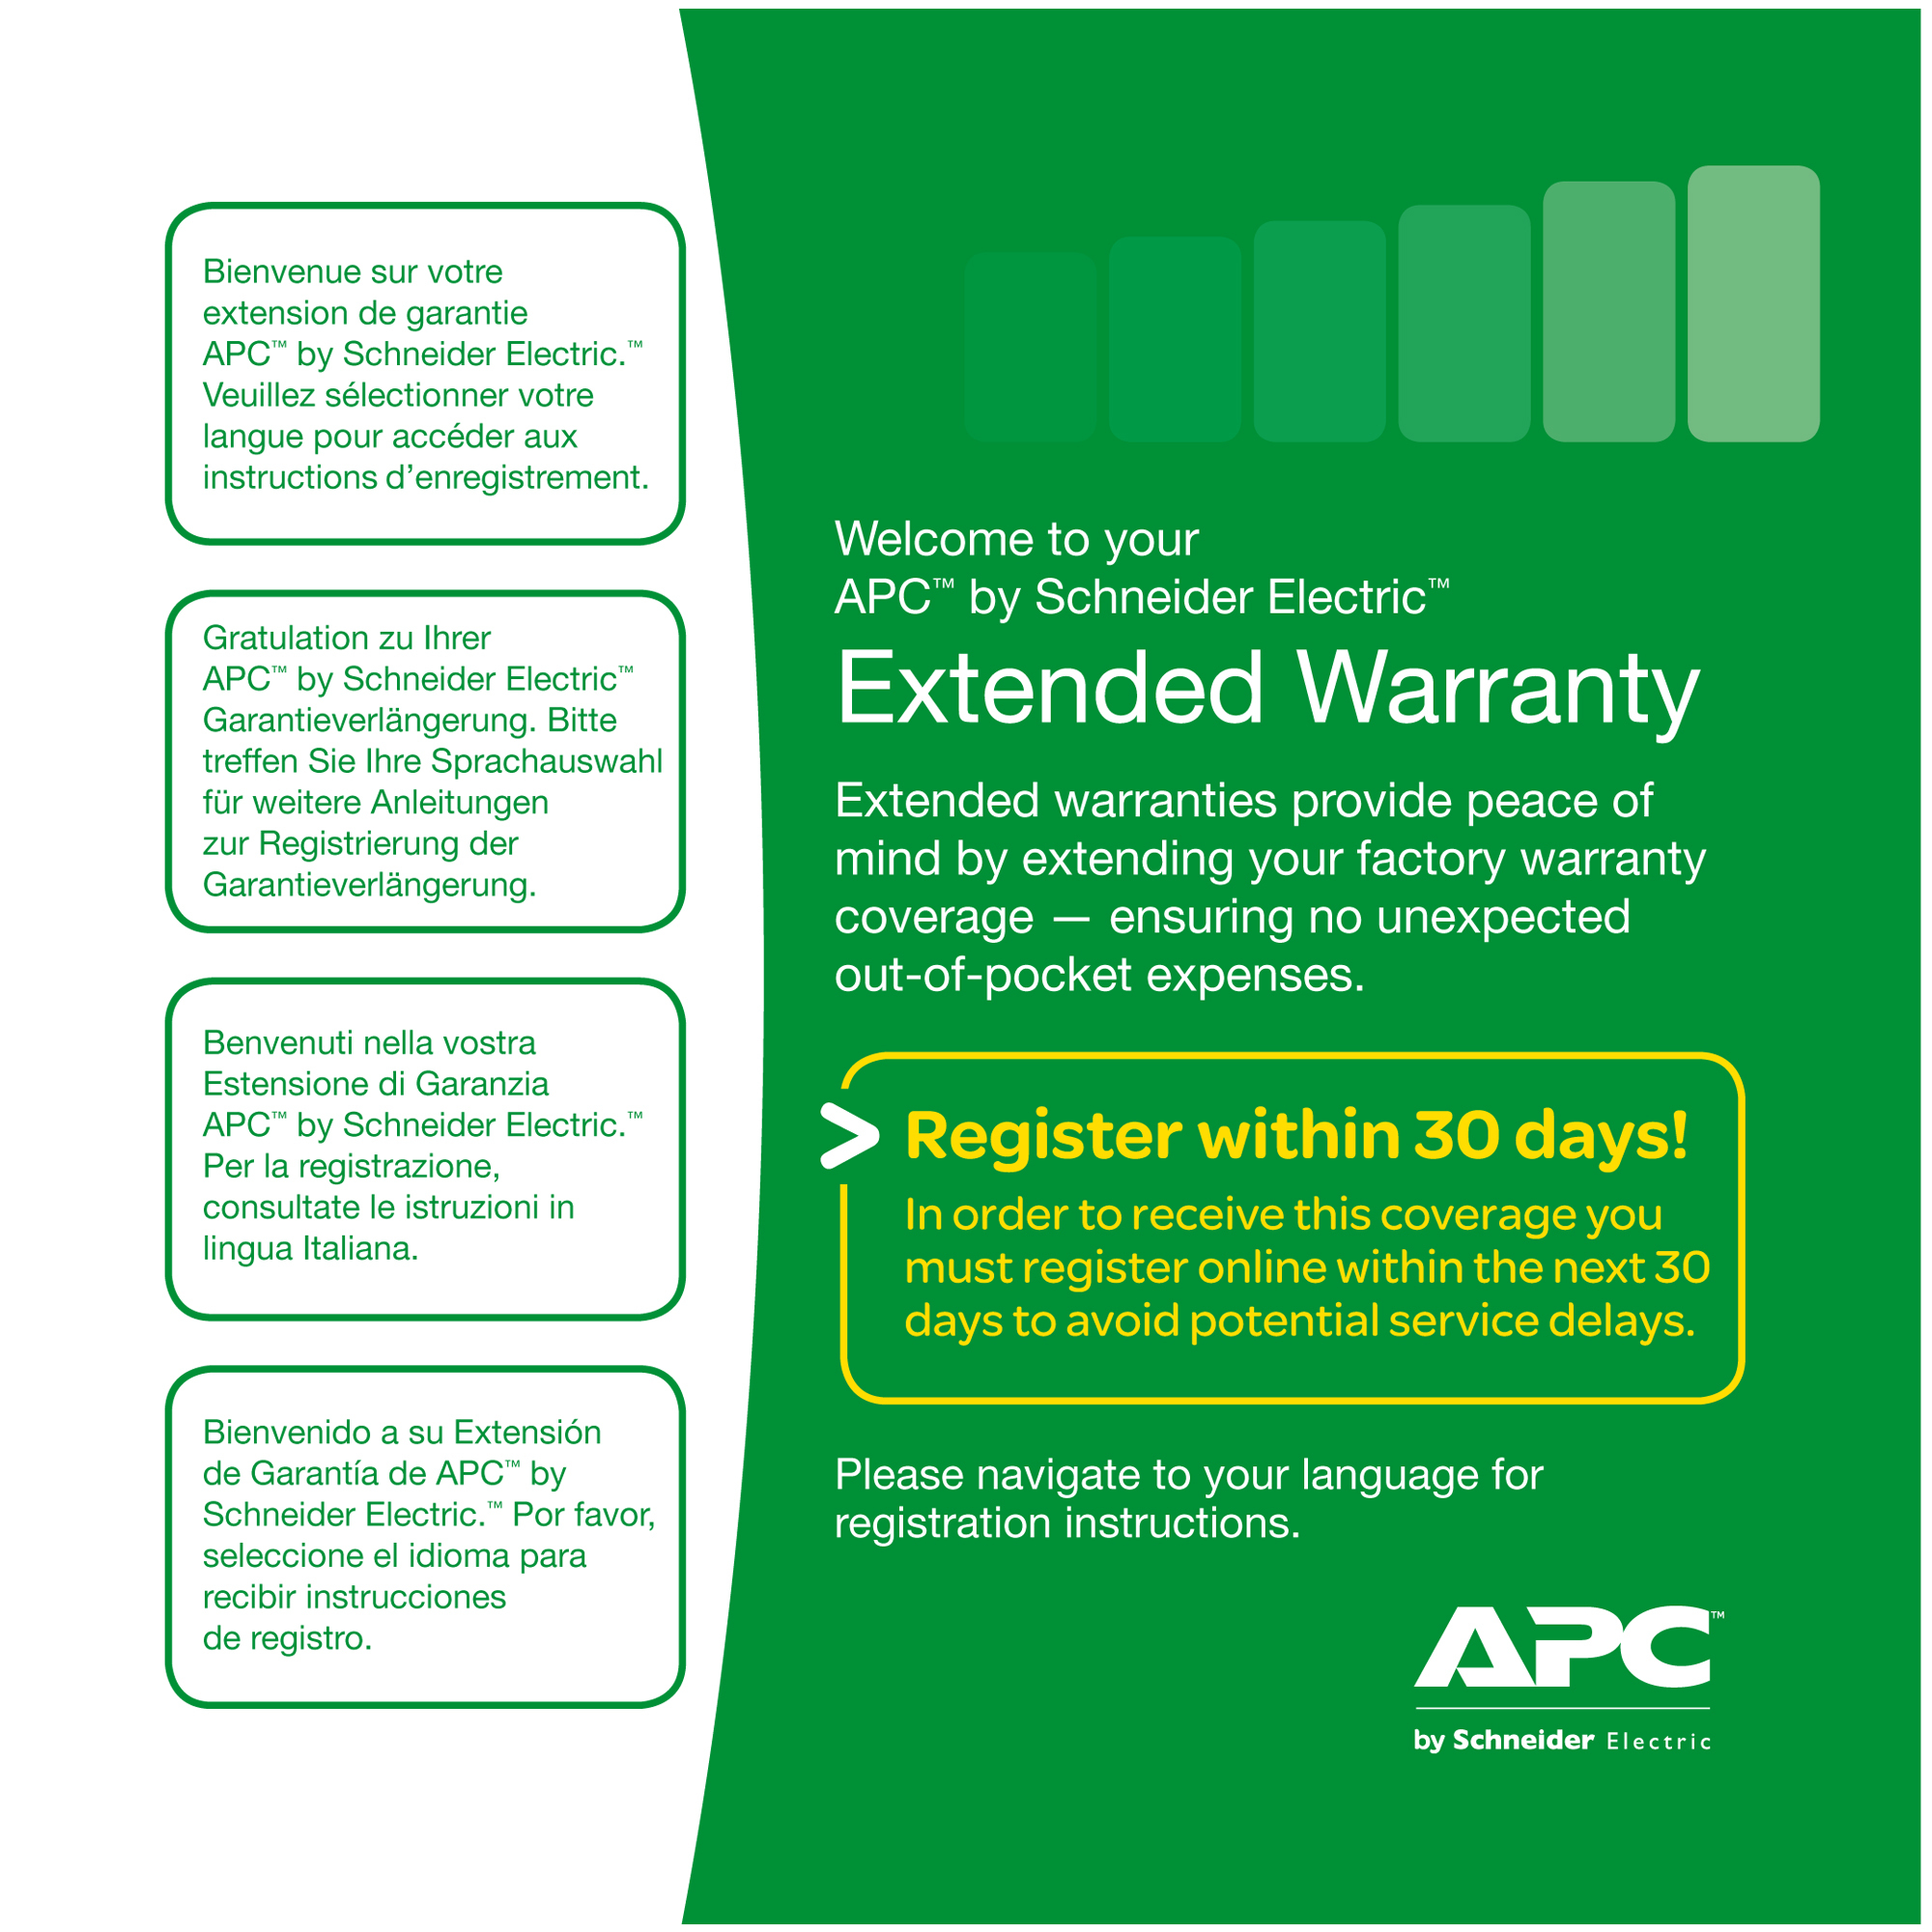 WBEXTWAR3YR-SP-02 Apc Service Pack 3 Year Warranty Extension (for New Product Purchases)  *** SPECIAL DELIVERY REQUIRED - CALL SALES FOR WARRANTY FORM** - C2000